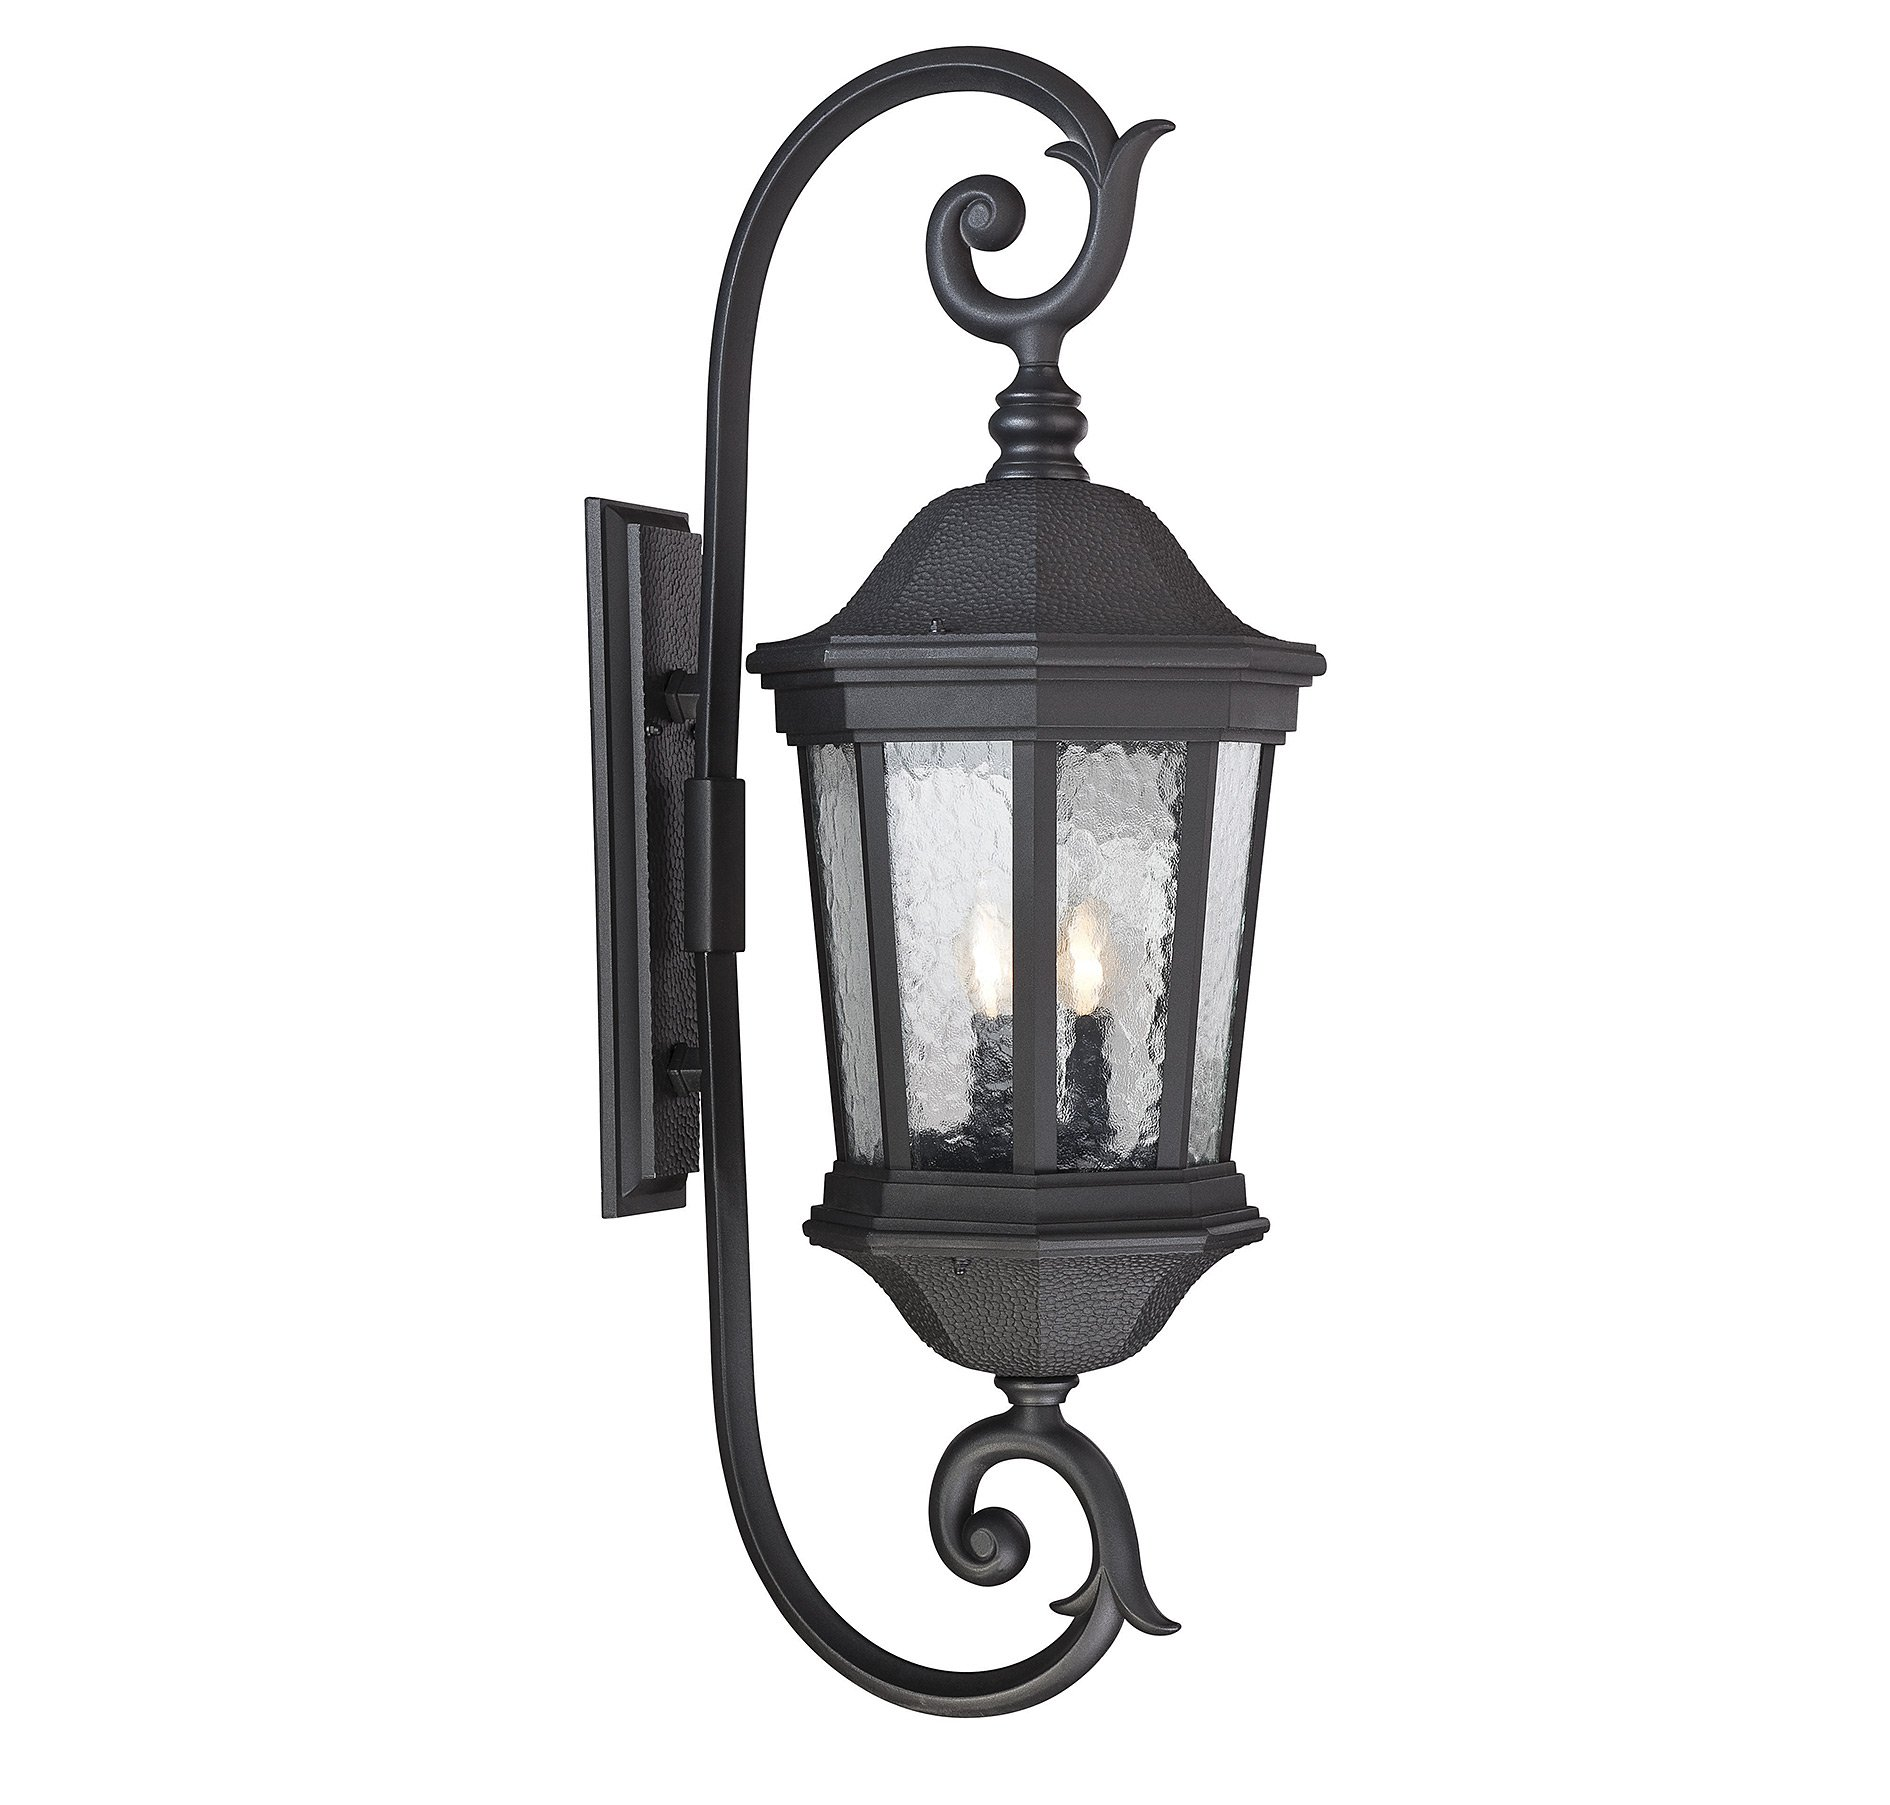 Savoy House 5-5085-BK Hampden 3-Light Outdoor Wall Lantern in Black by Savoy House